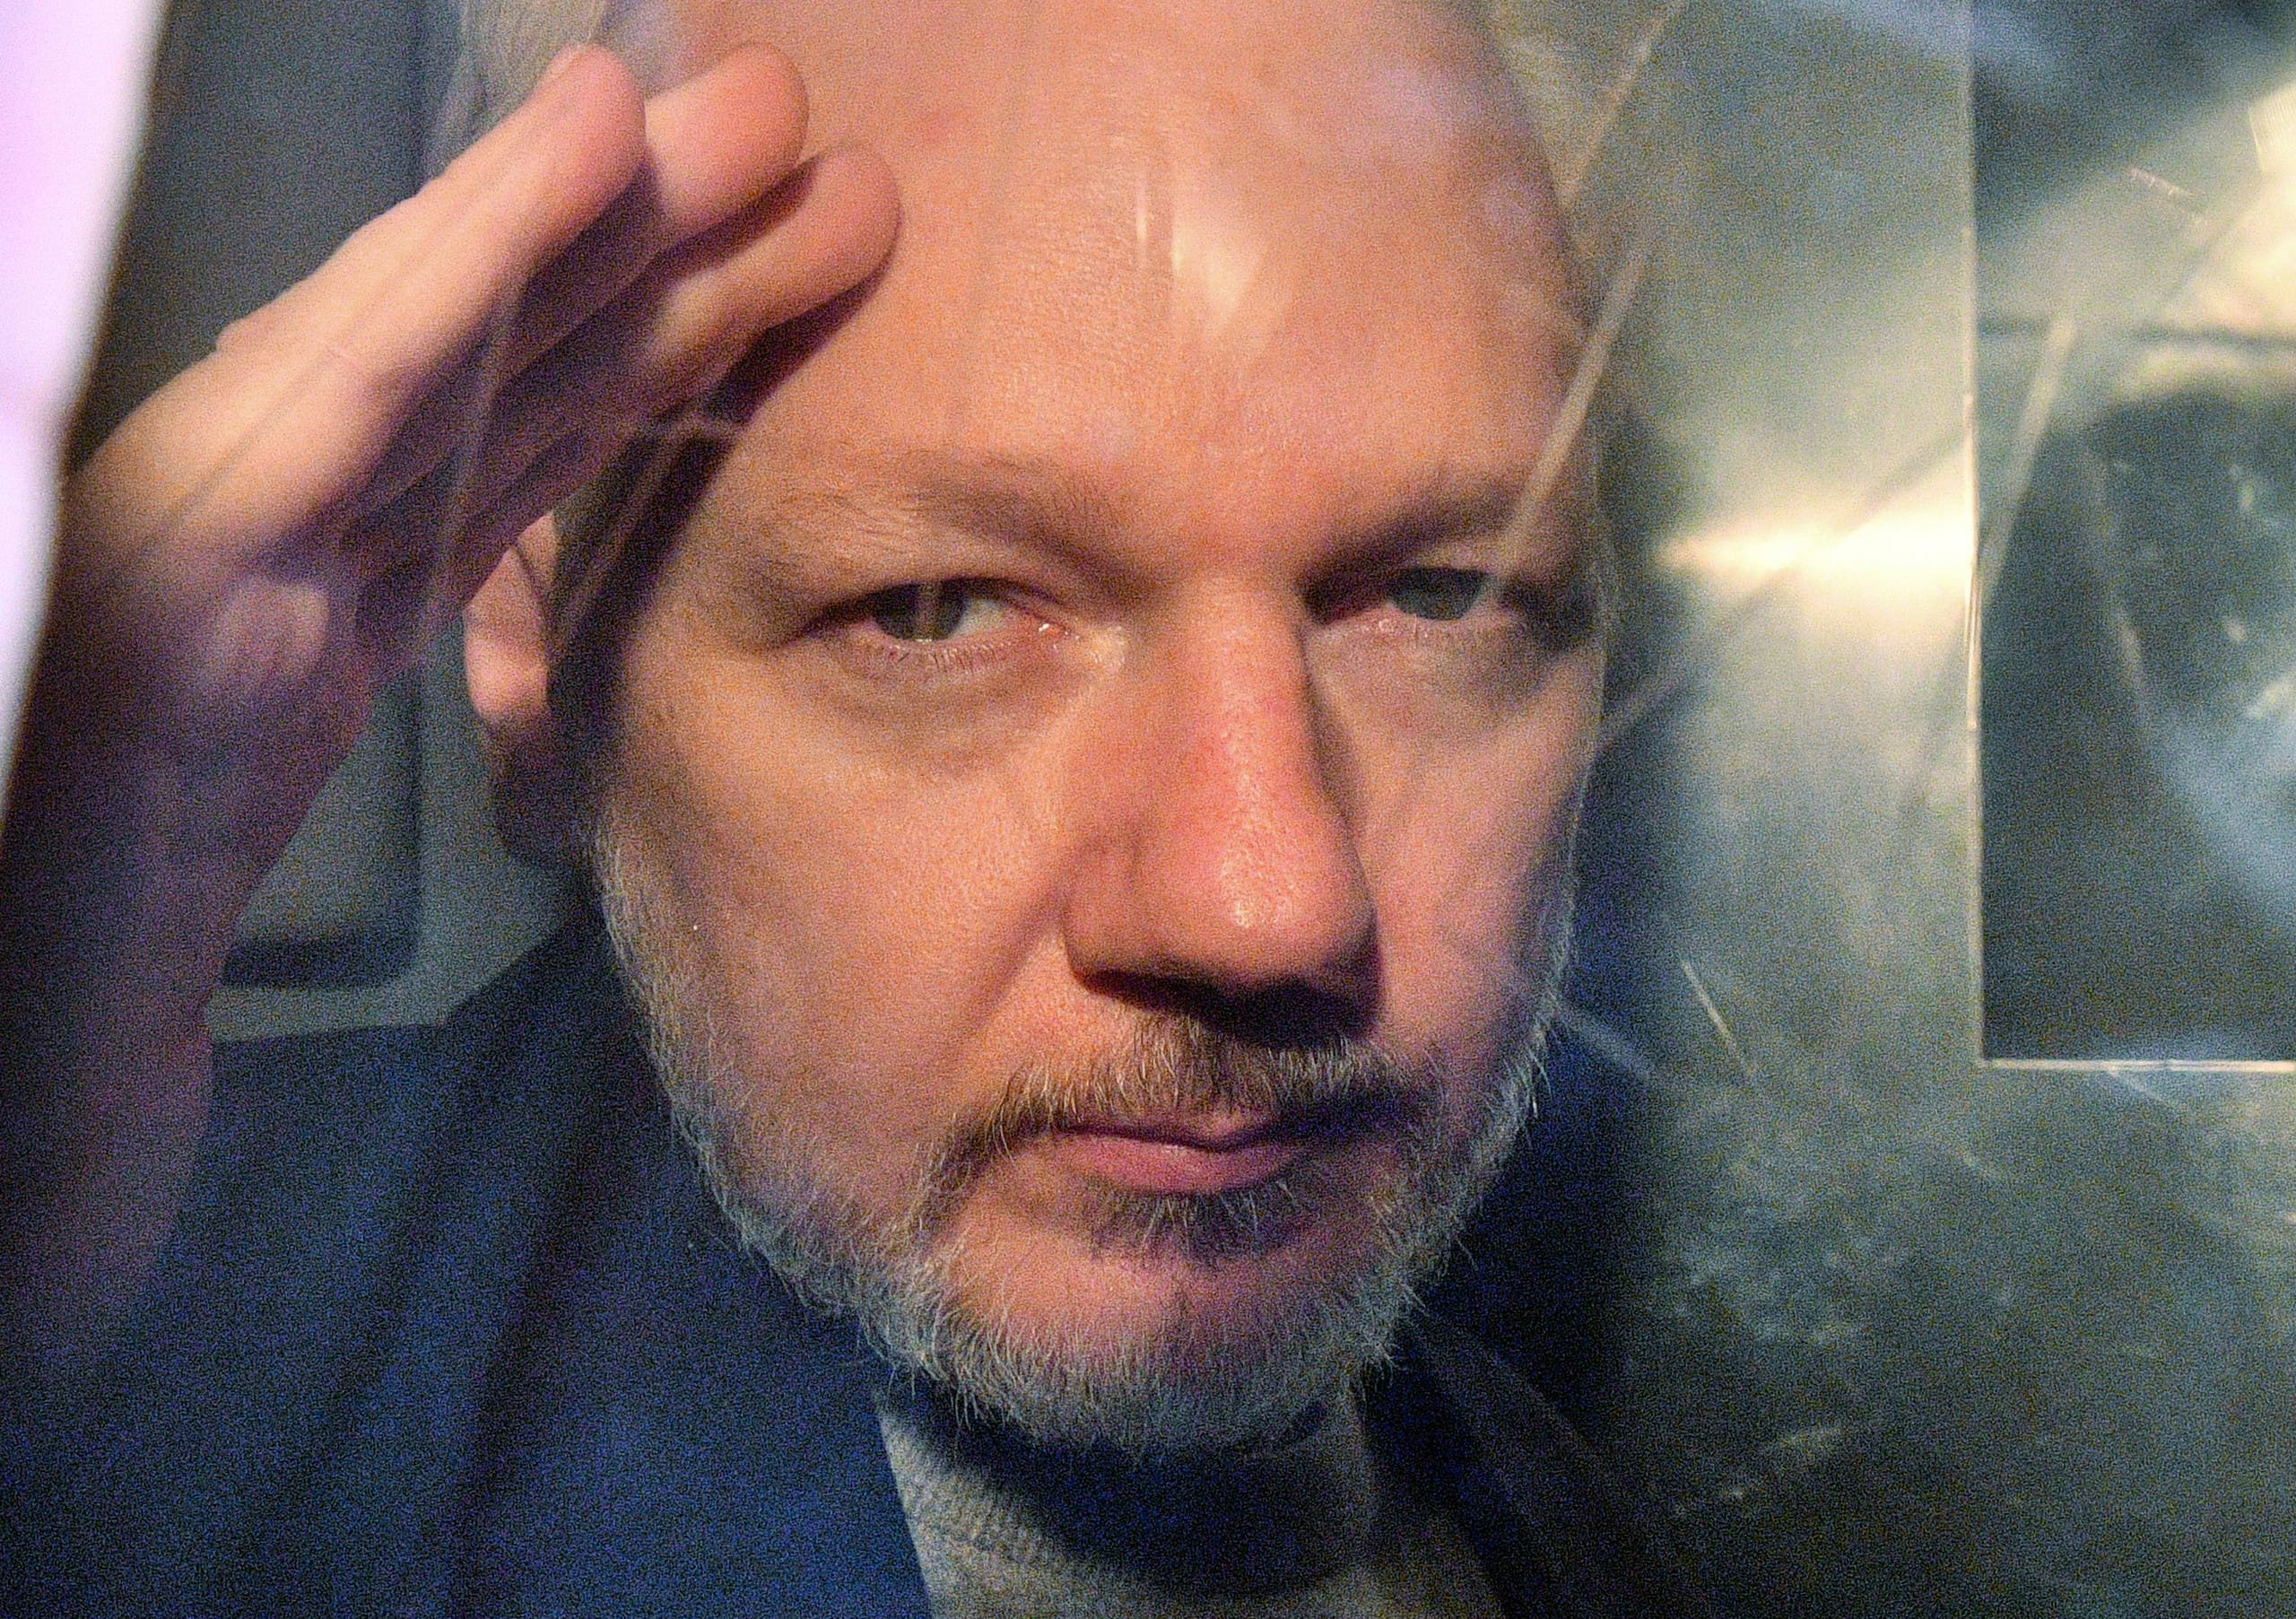 WikiLeaks founder Julian Assange gestures from the window of a prison van as he is driven out of Southwark Crown Court in London on May 1 2019. (Stock image)